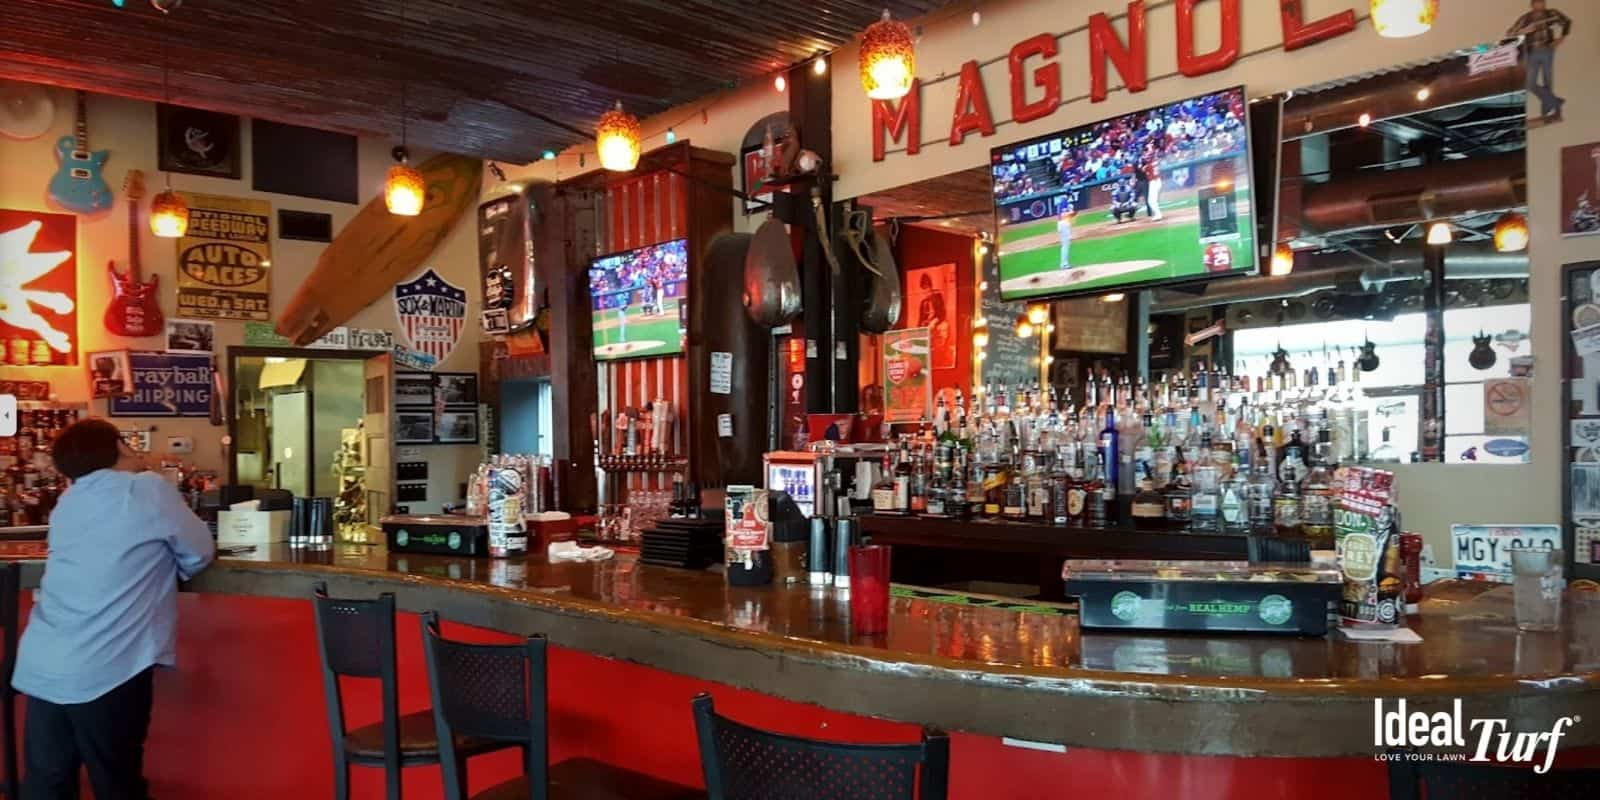 Picture of the bar at Magnolia Motor Lounge in Fort Worth